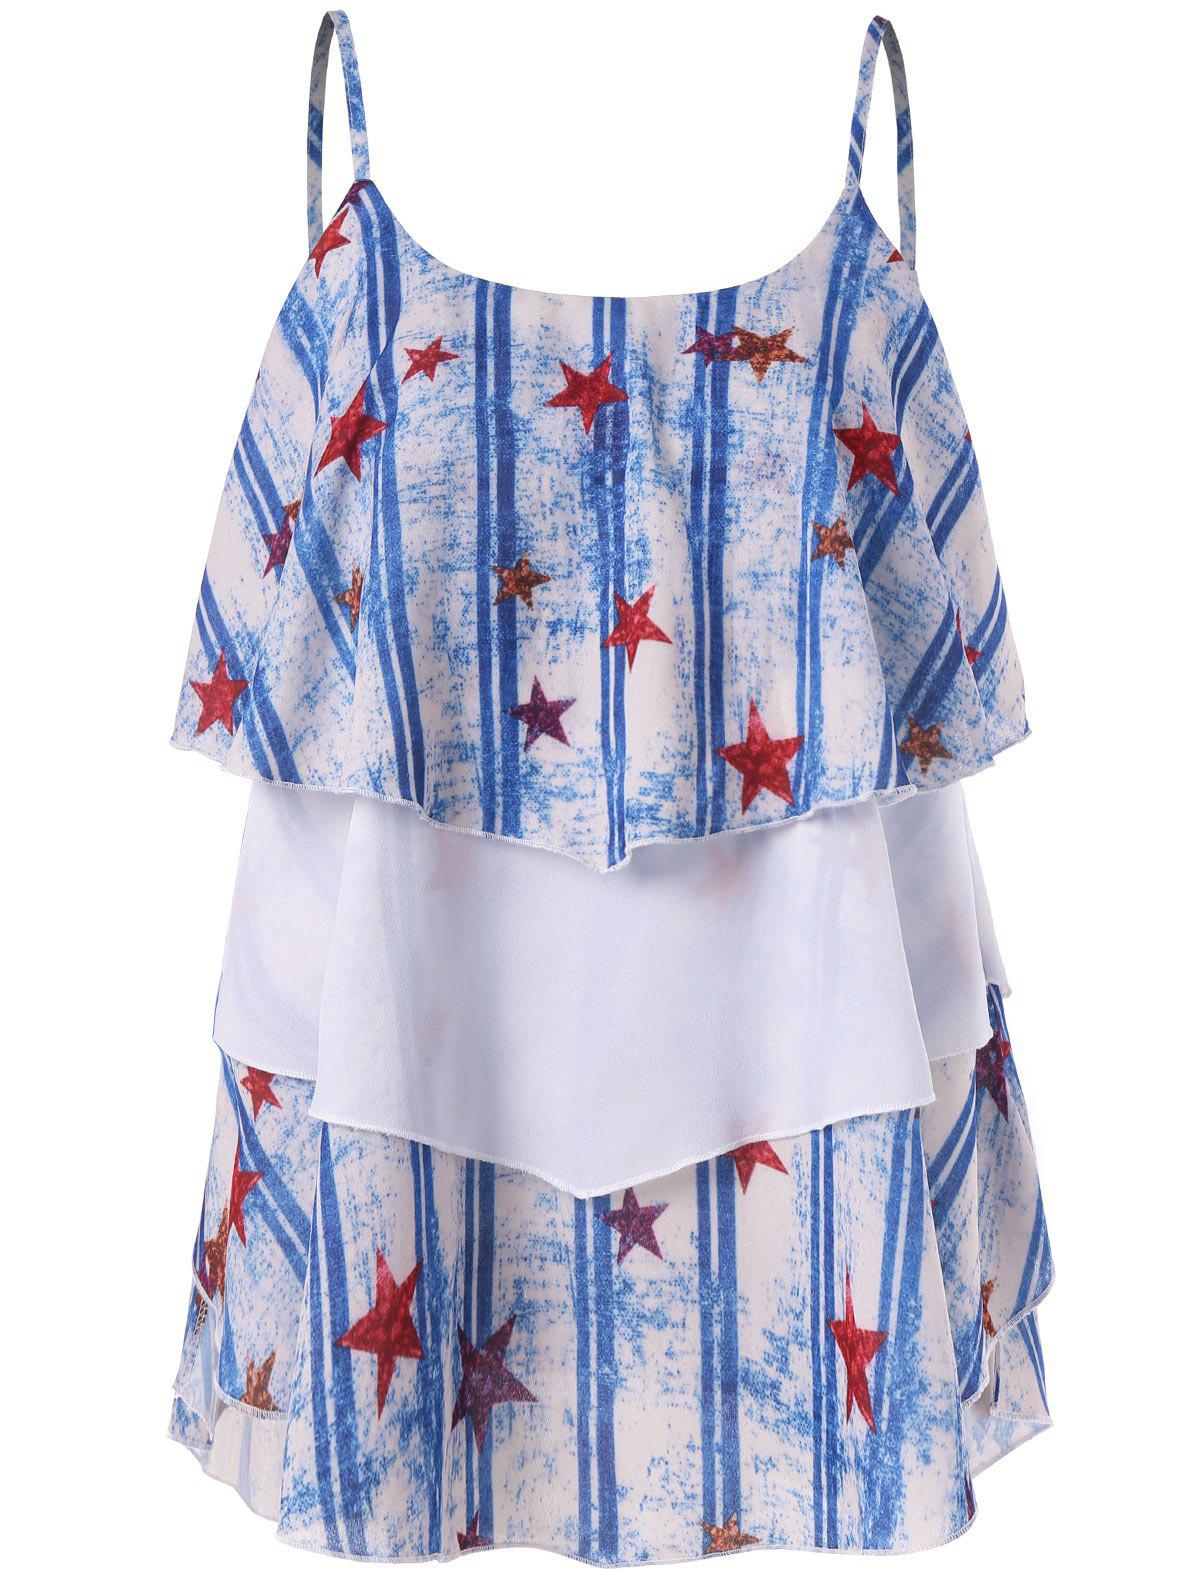 Chic Stars Stripes Printed Layered Cami Top